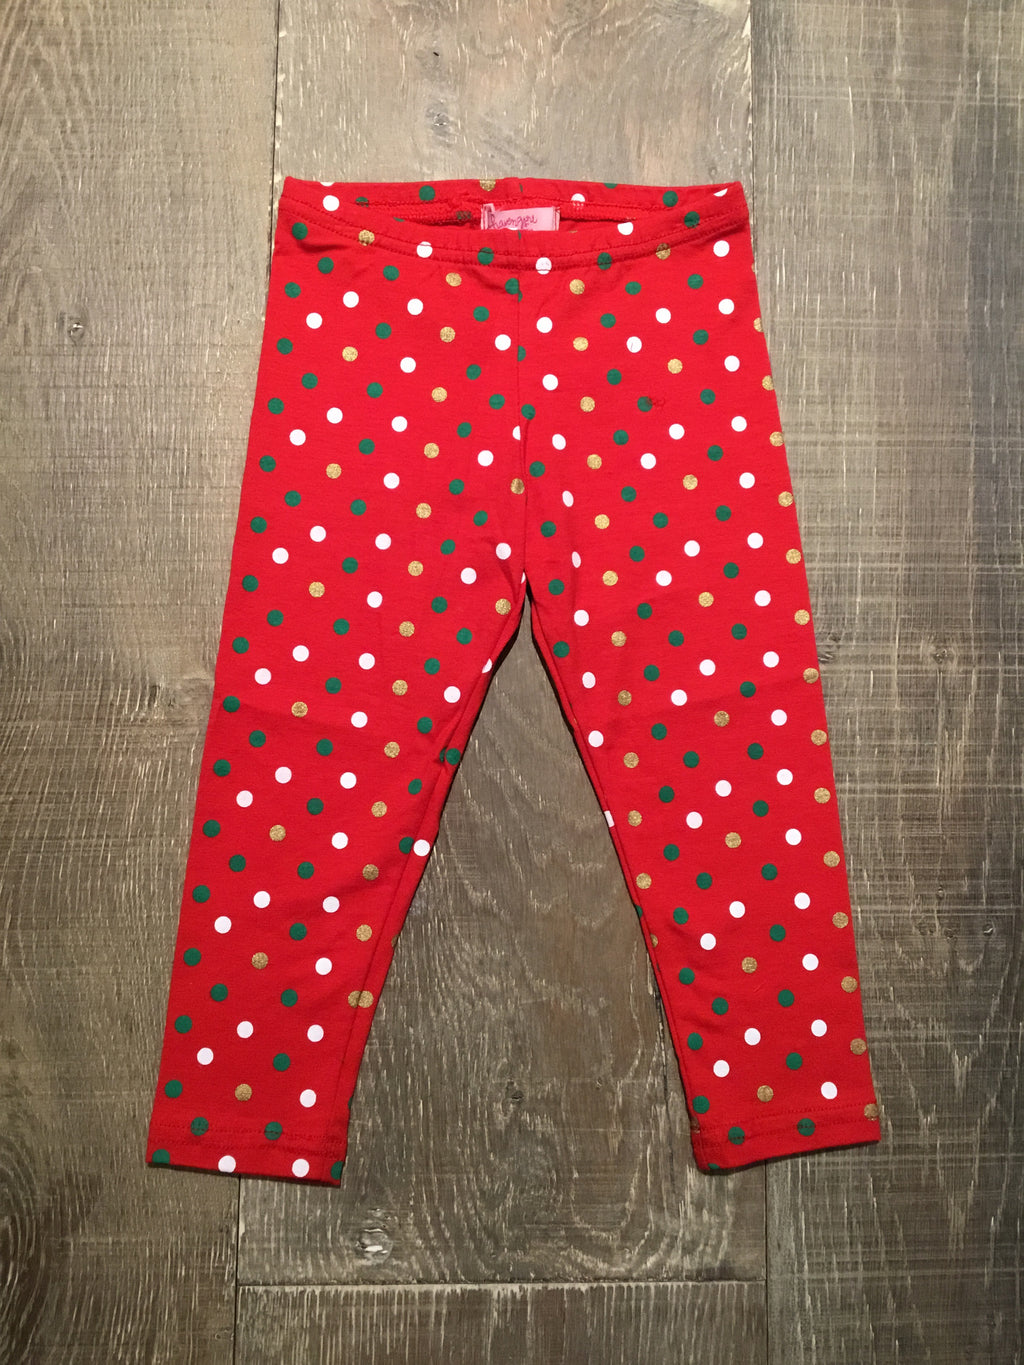 Green/Gold/White Dotted on Red Leggings